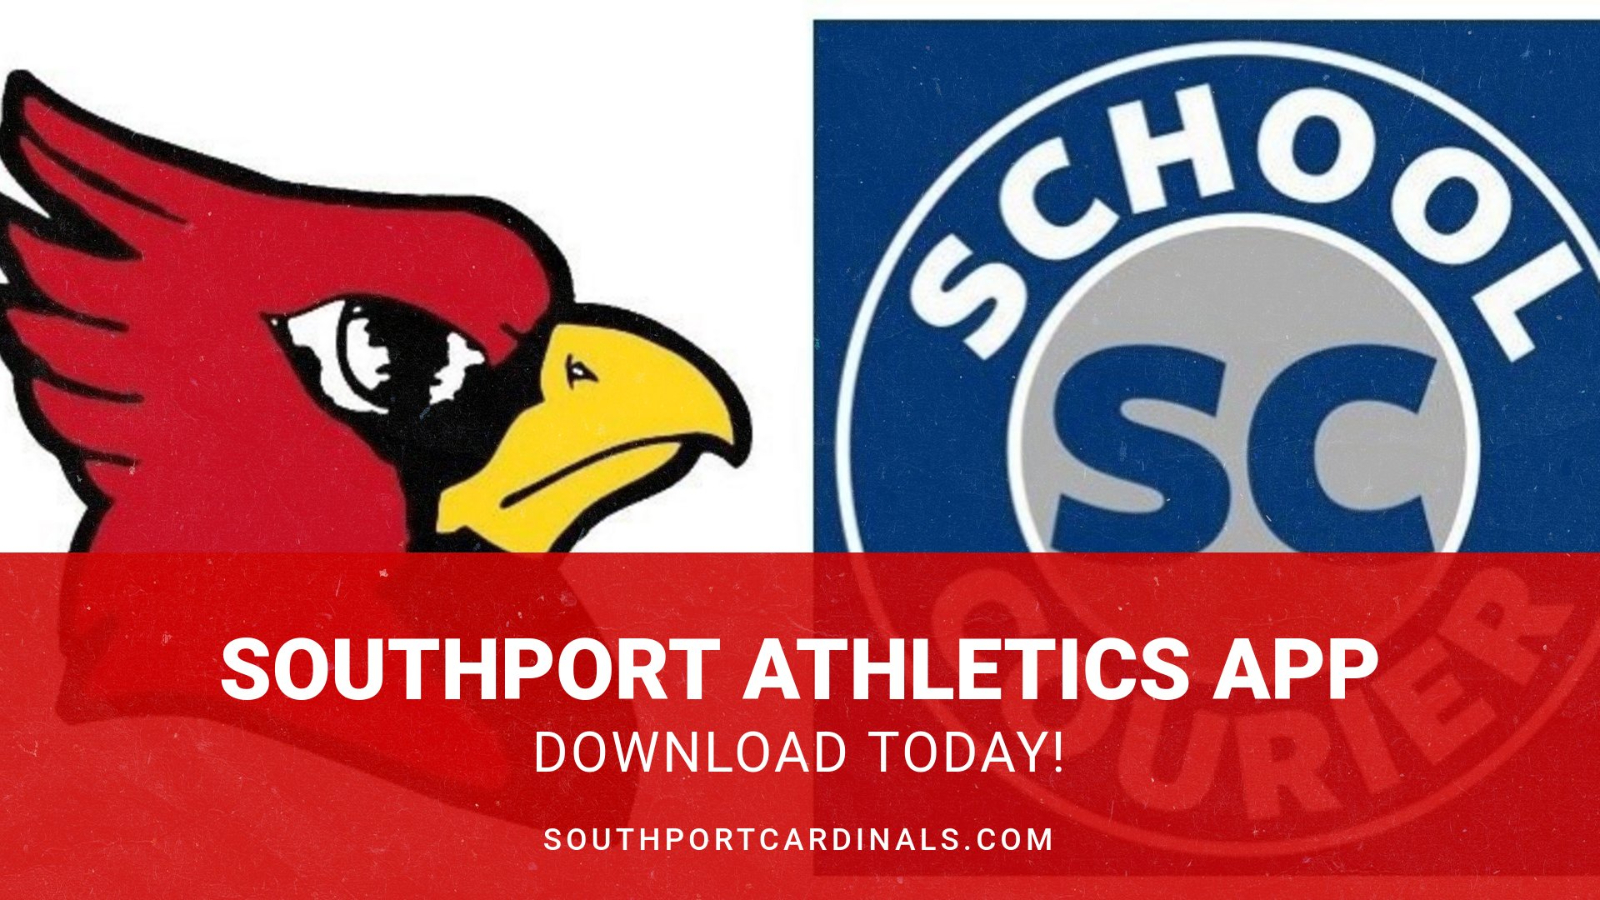 Download the Southport Cardinals App